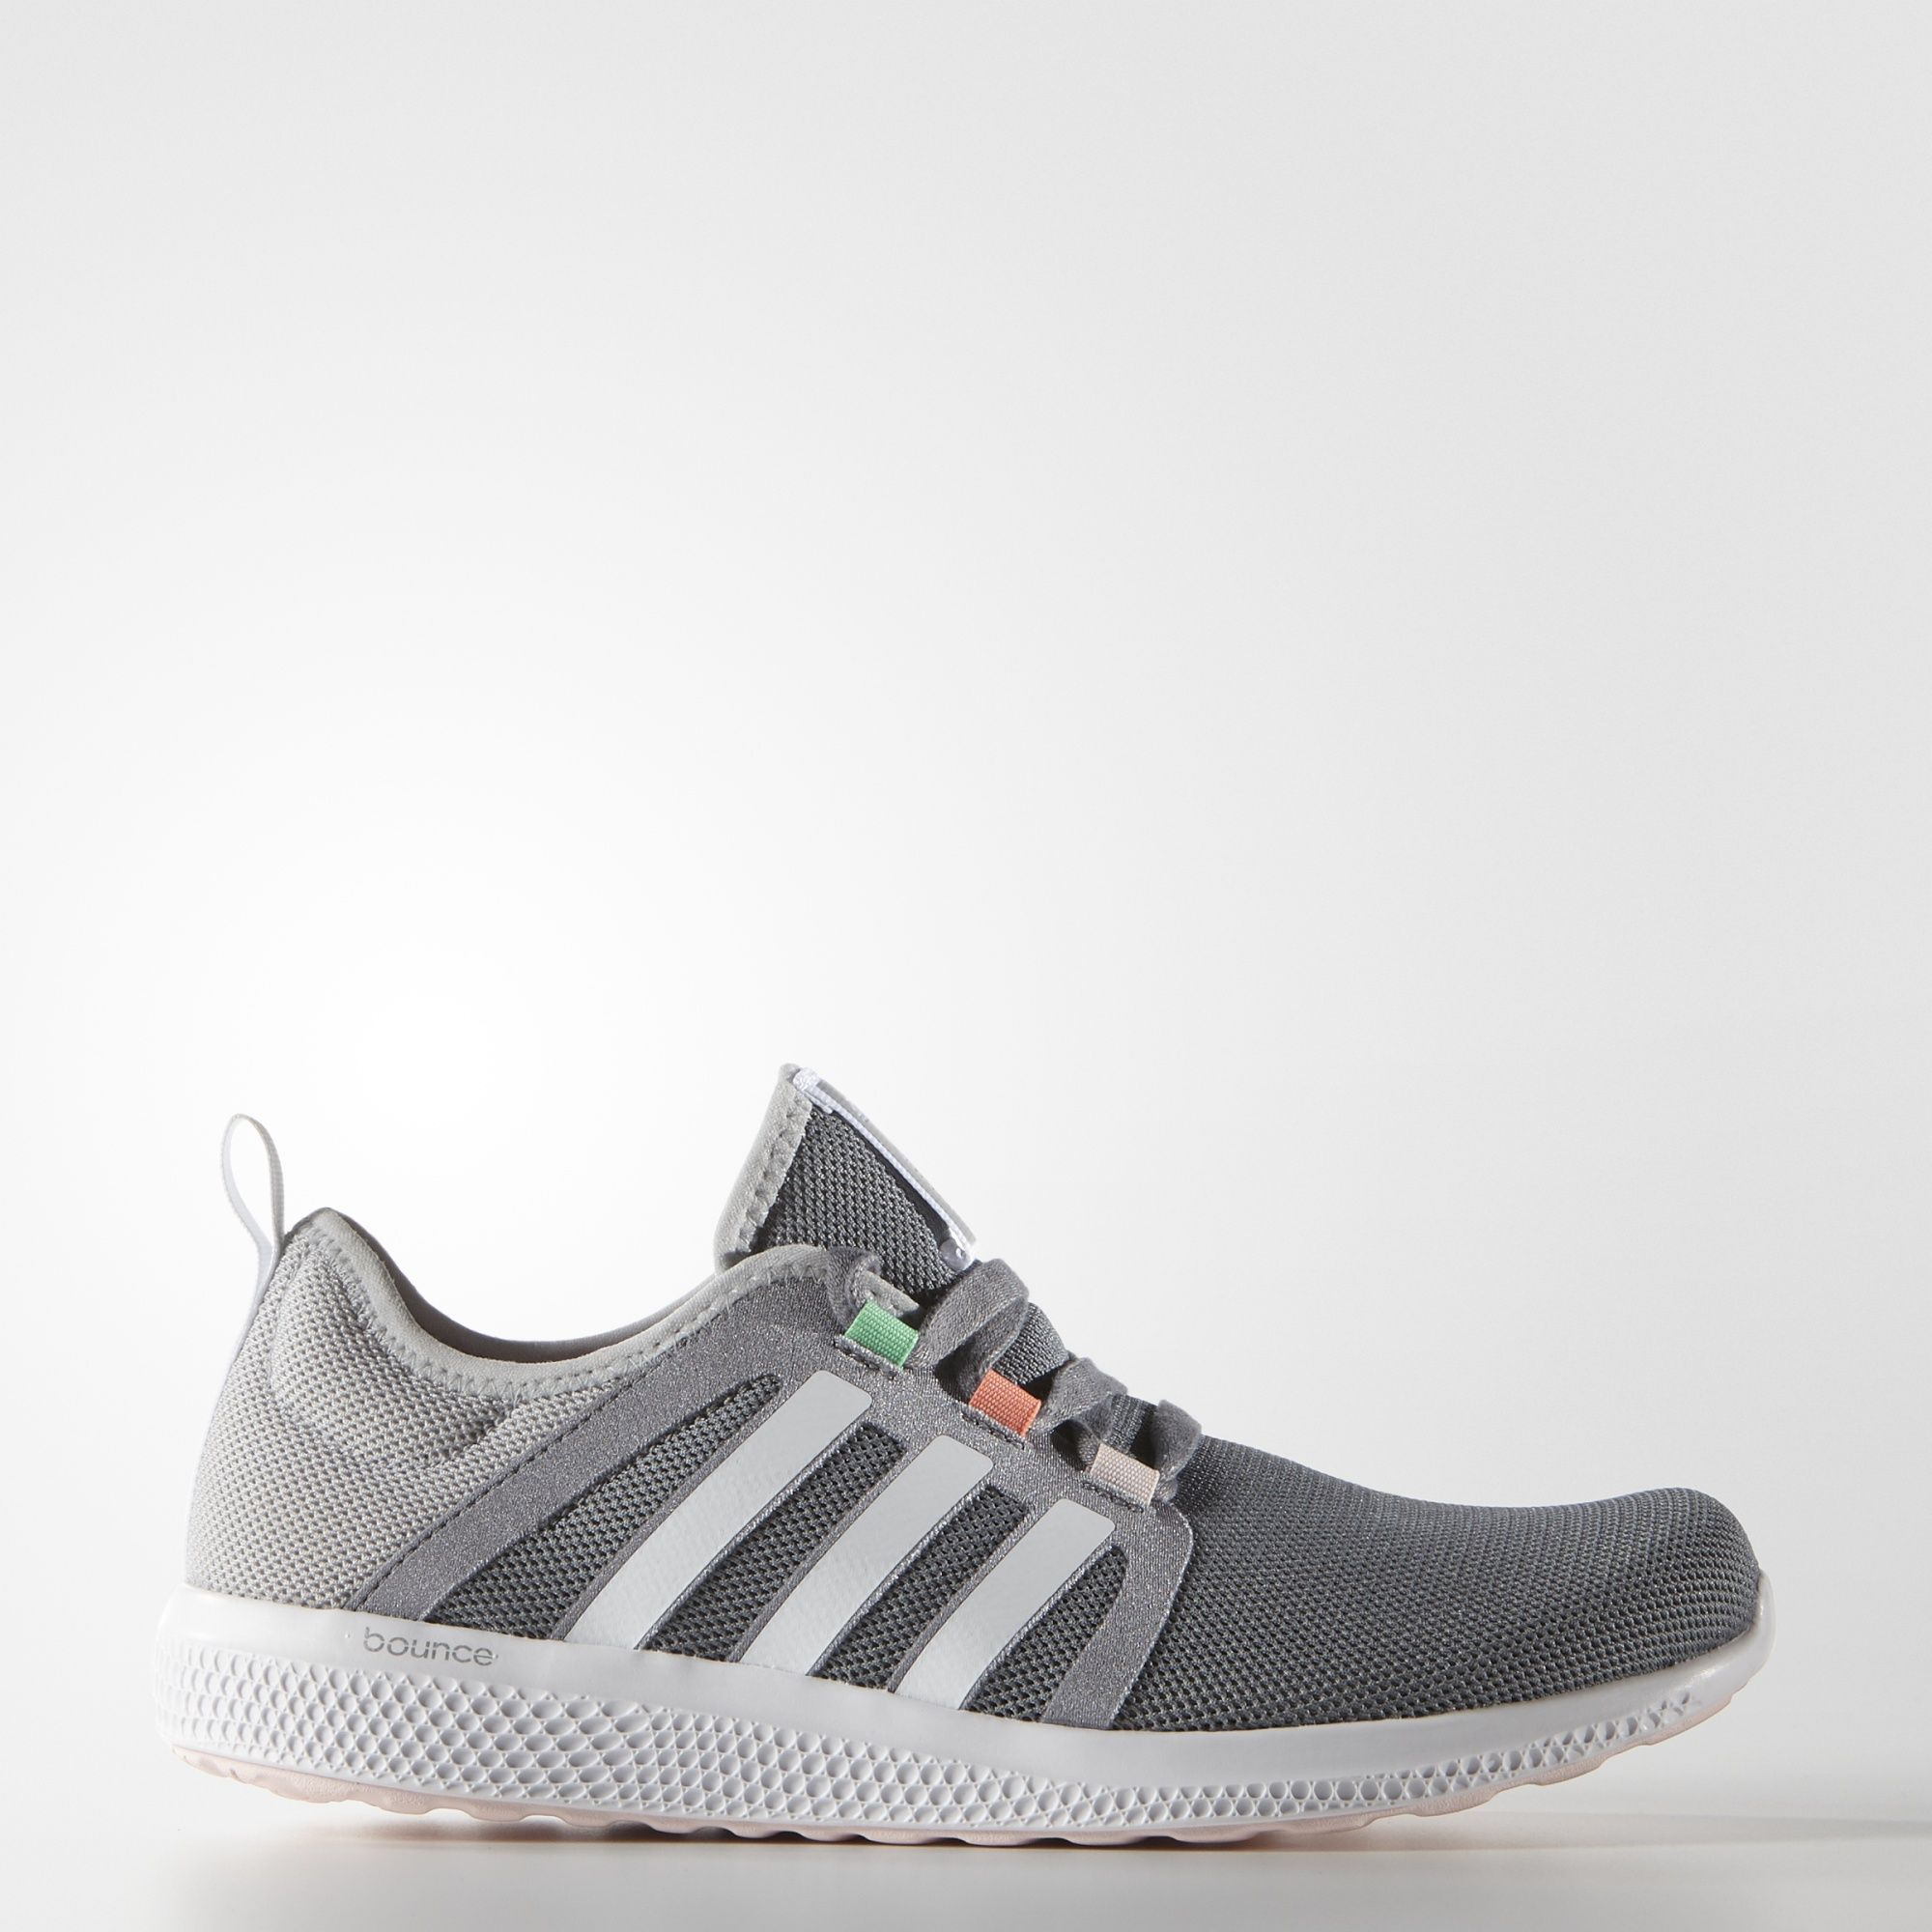 new arrival 58e8c 11ba5 adidas - Climacool Fresh Bounce Shoes | Workout clothes ...